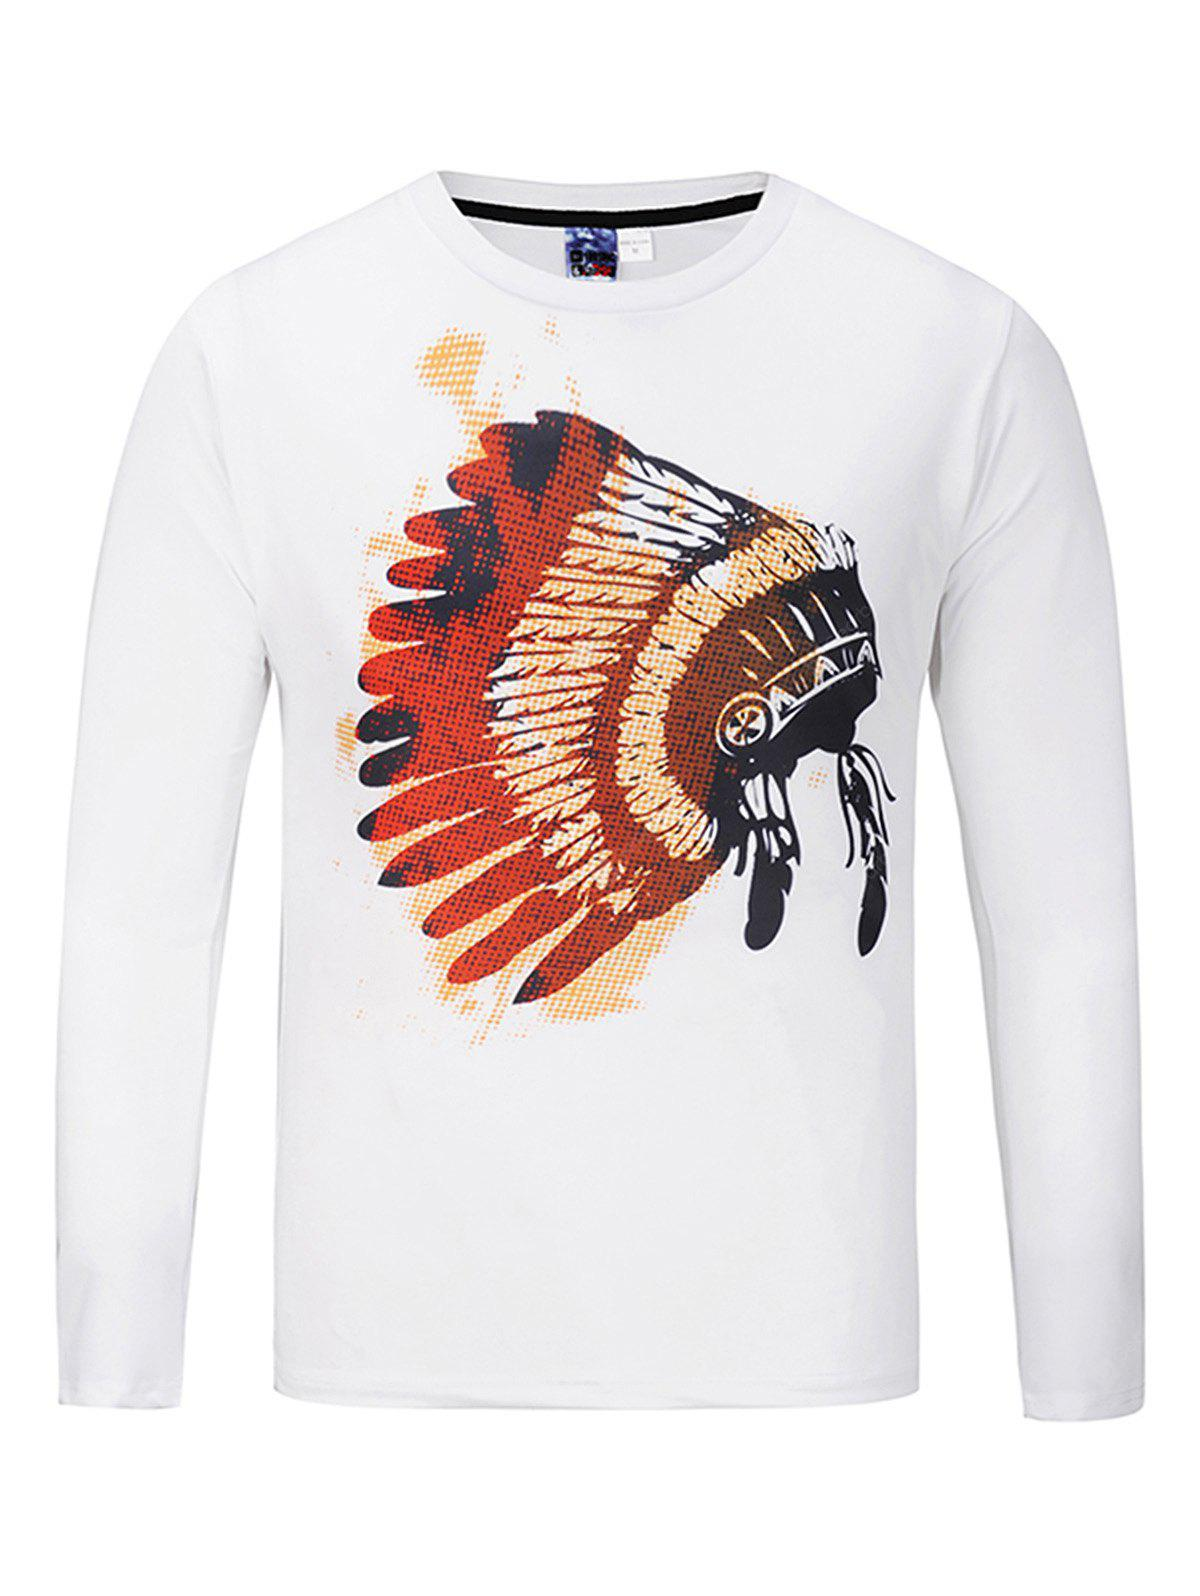 Casual Round Collar Long Sleeve Printed T-shirt